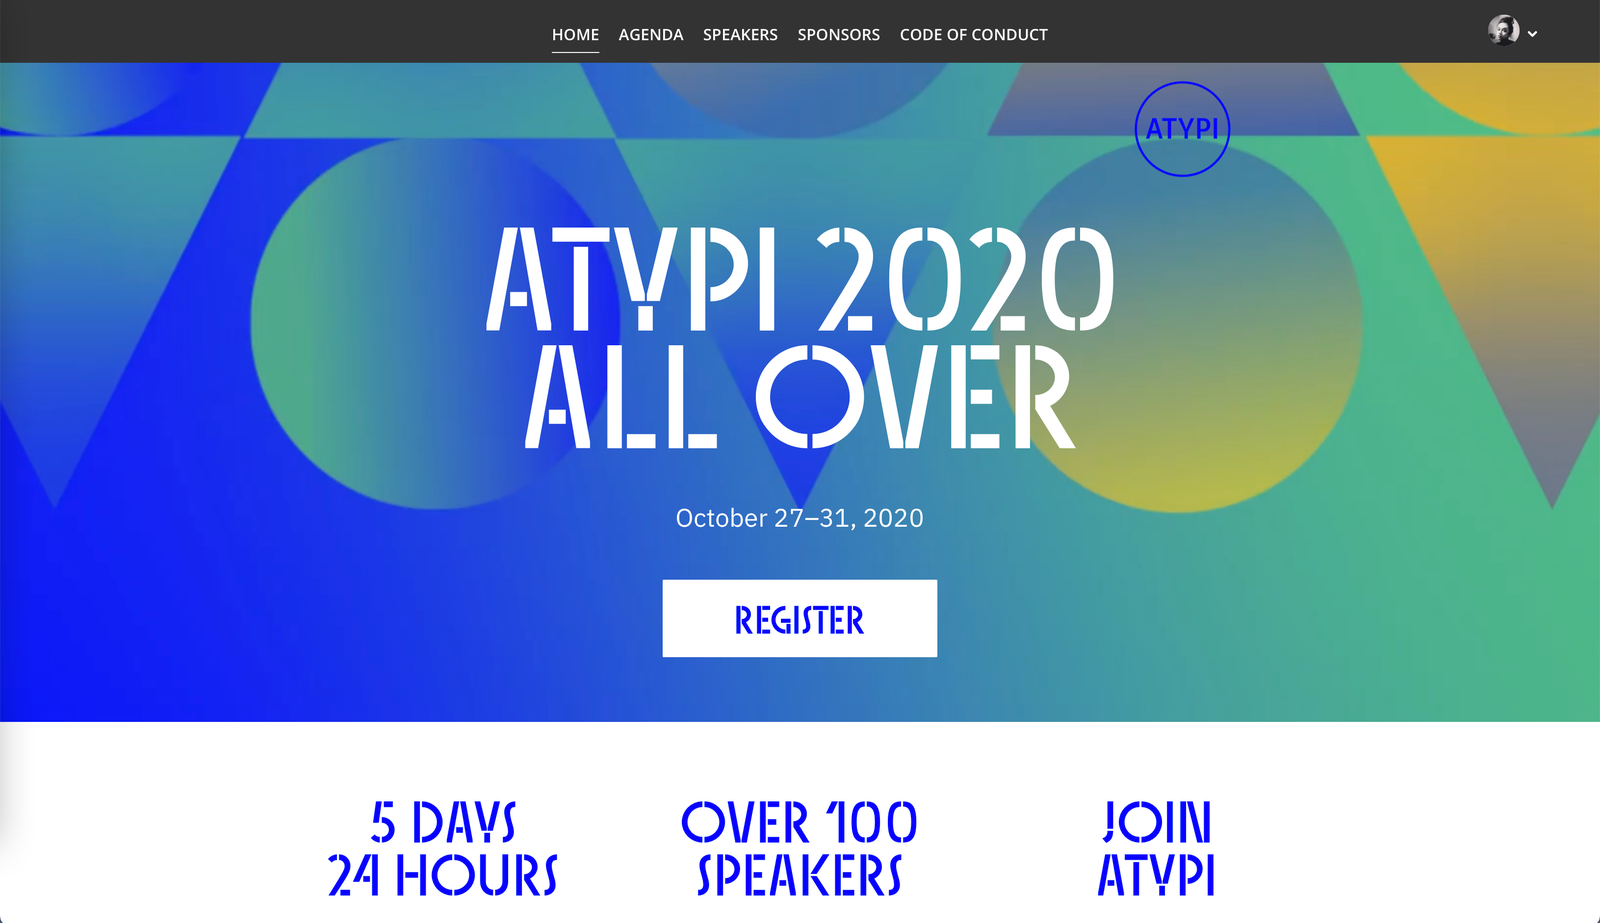 Screenshot of the ATypI 2020 website.